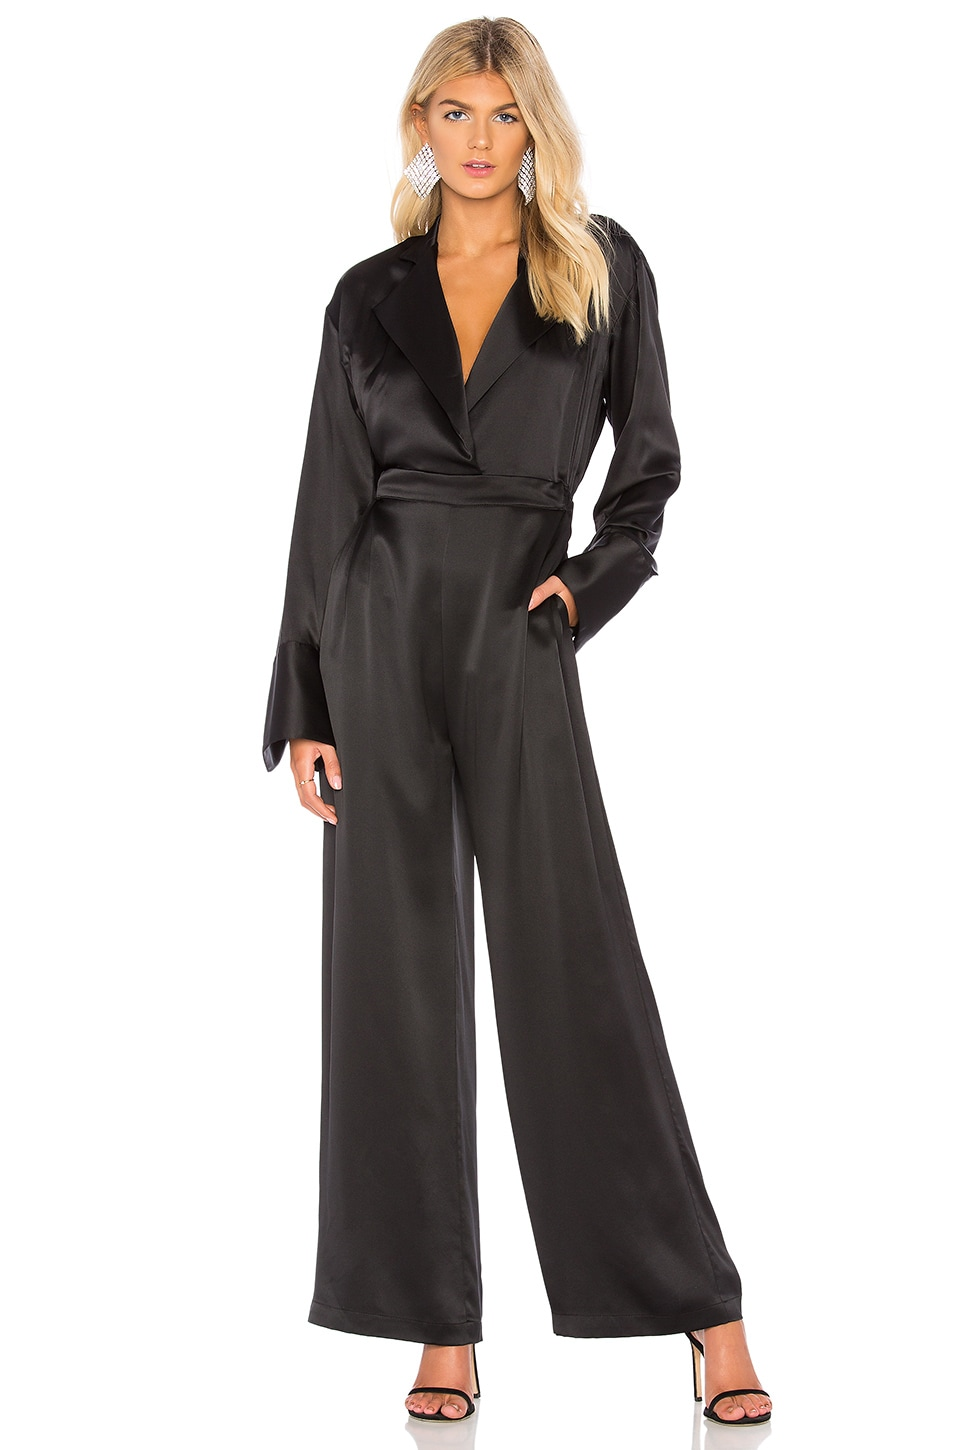 Michael Lo Sordo Super Wide Leg Jumpsuit in Black